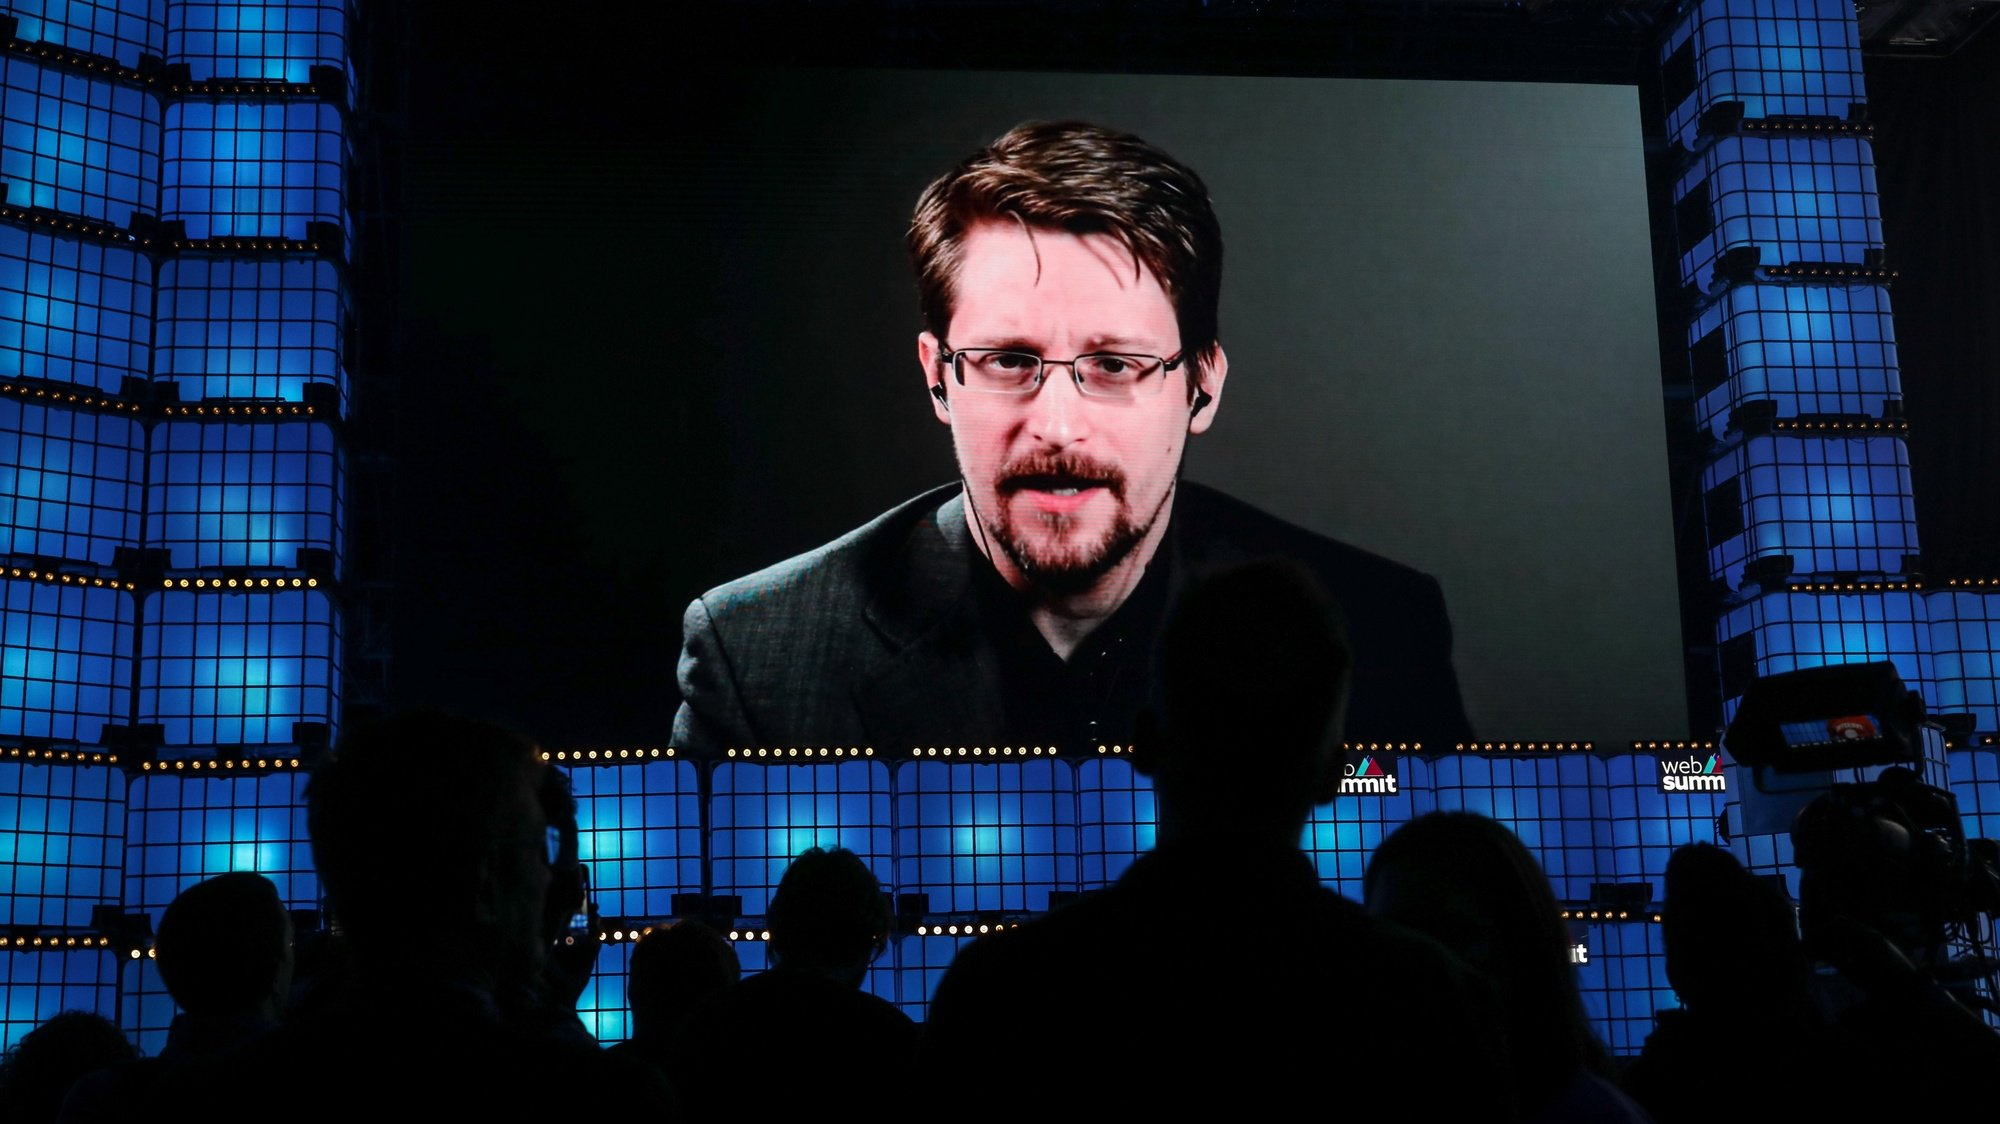 epa07972515 Edward Snowden of Fredom of the Press Foundation addresses a speech in video conference in the official opening ceremony of the 2019 Web Summit at Atlantic Pavilion in Lisbon, Portugal, 04 November 2019. The 2019 Web Summit, considered the largest event of startups and technological entrepreneur ship in the world, takes place from 04 to 07 November.  EPA/MIGUEL A. LOPES